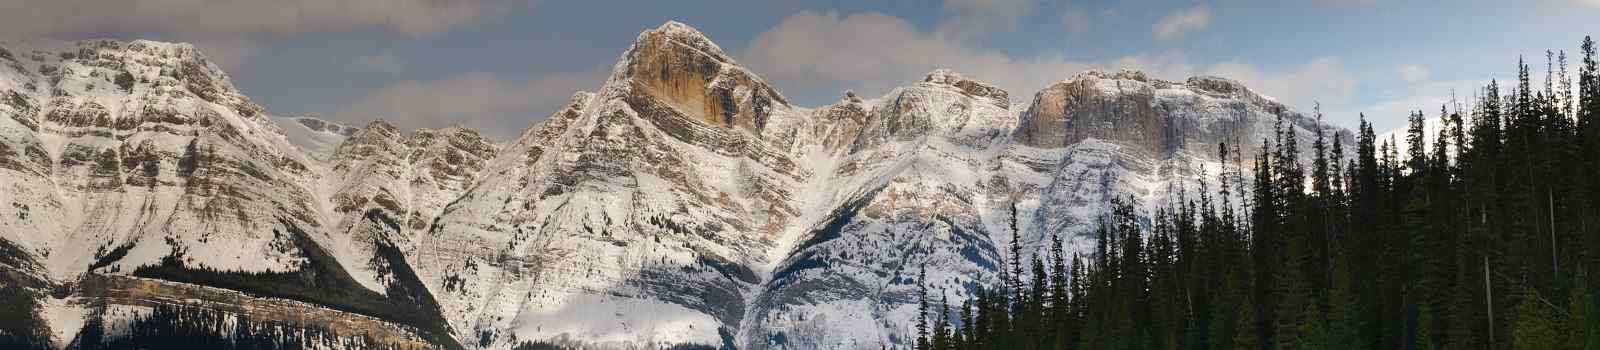 CAD-RM-RGRC  Kanada Alberta Mountain scenery along the Icefields Parkway, Banff and Jasper National Parks